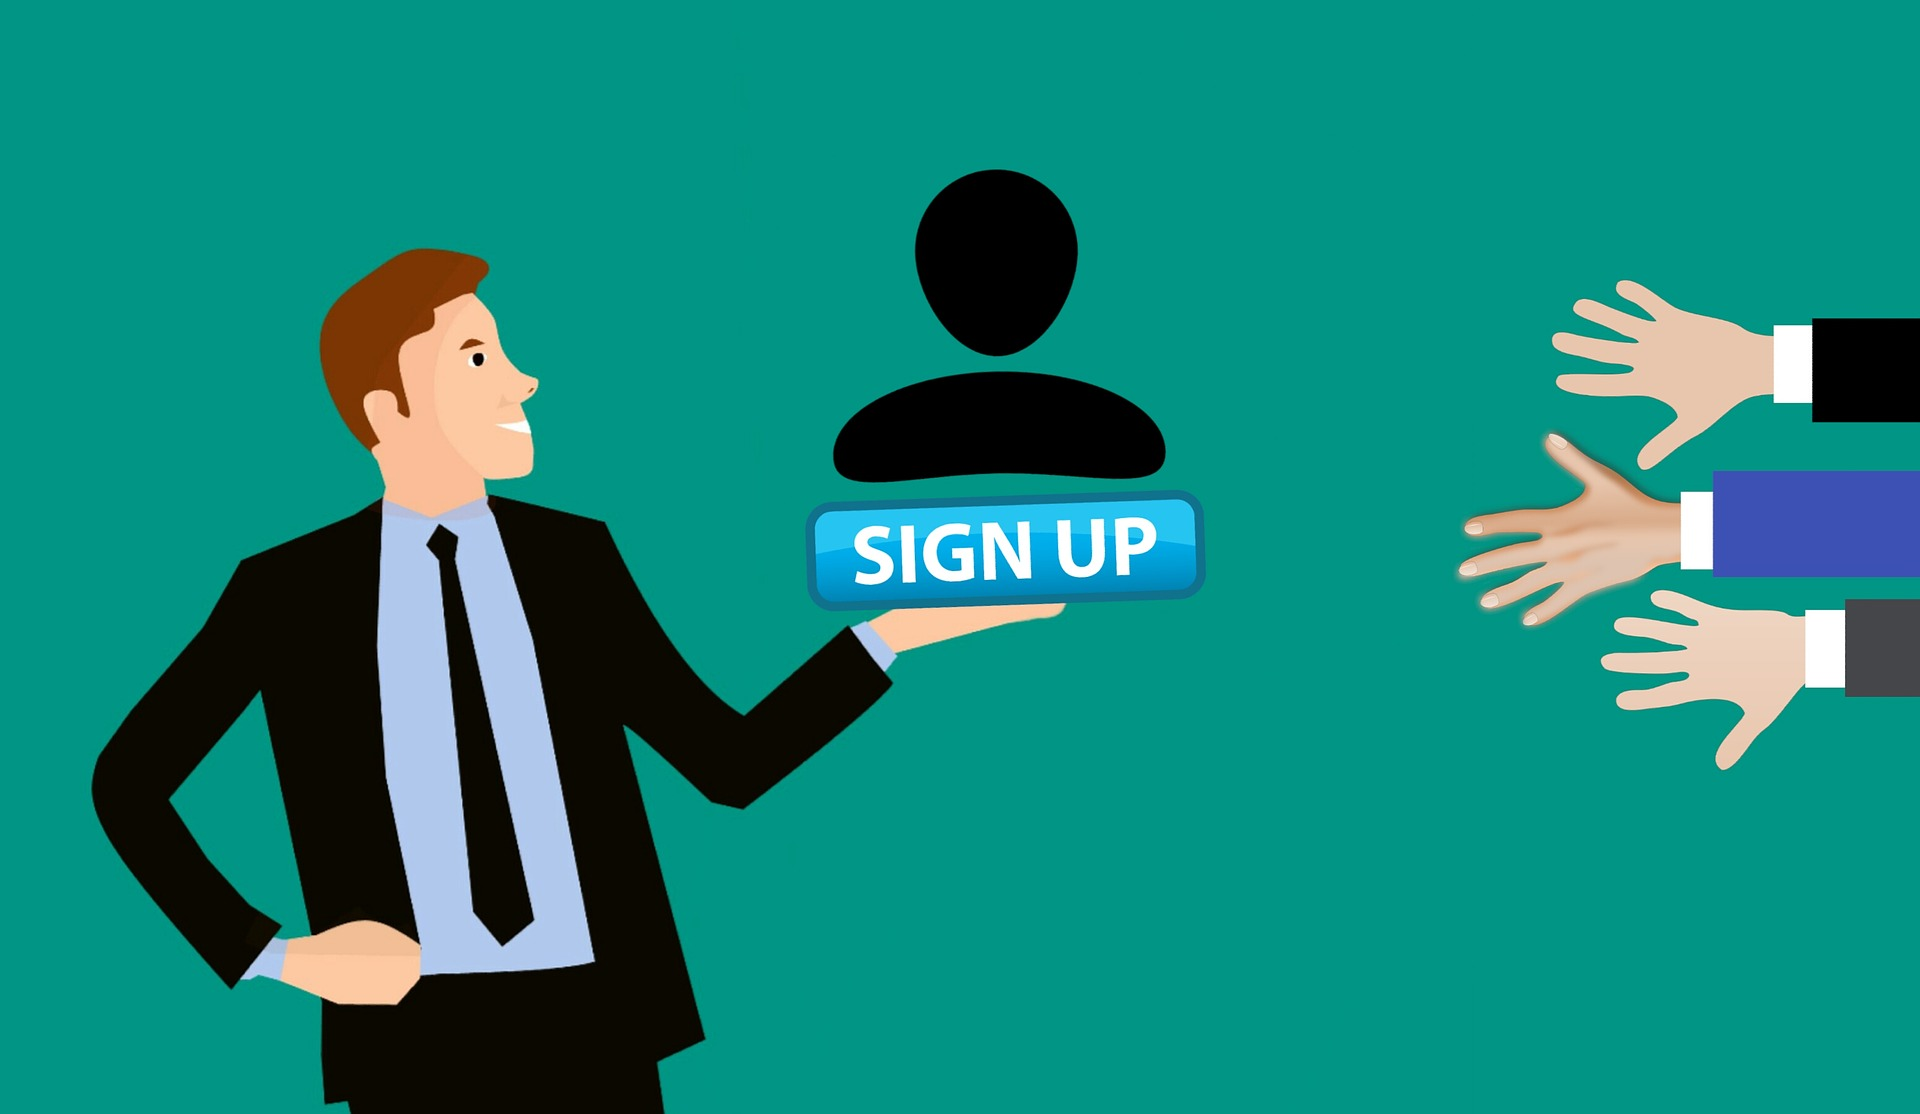 infographic business man with sign up icon on the hand and diverse arms which are trying to reach it